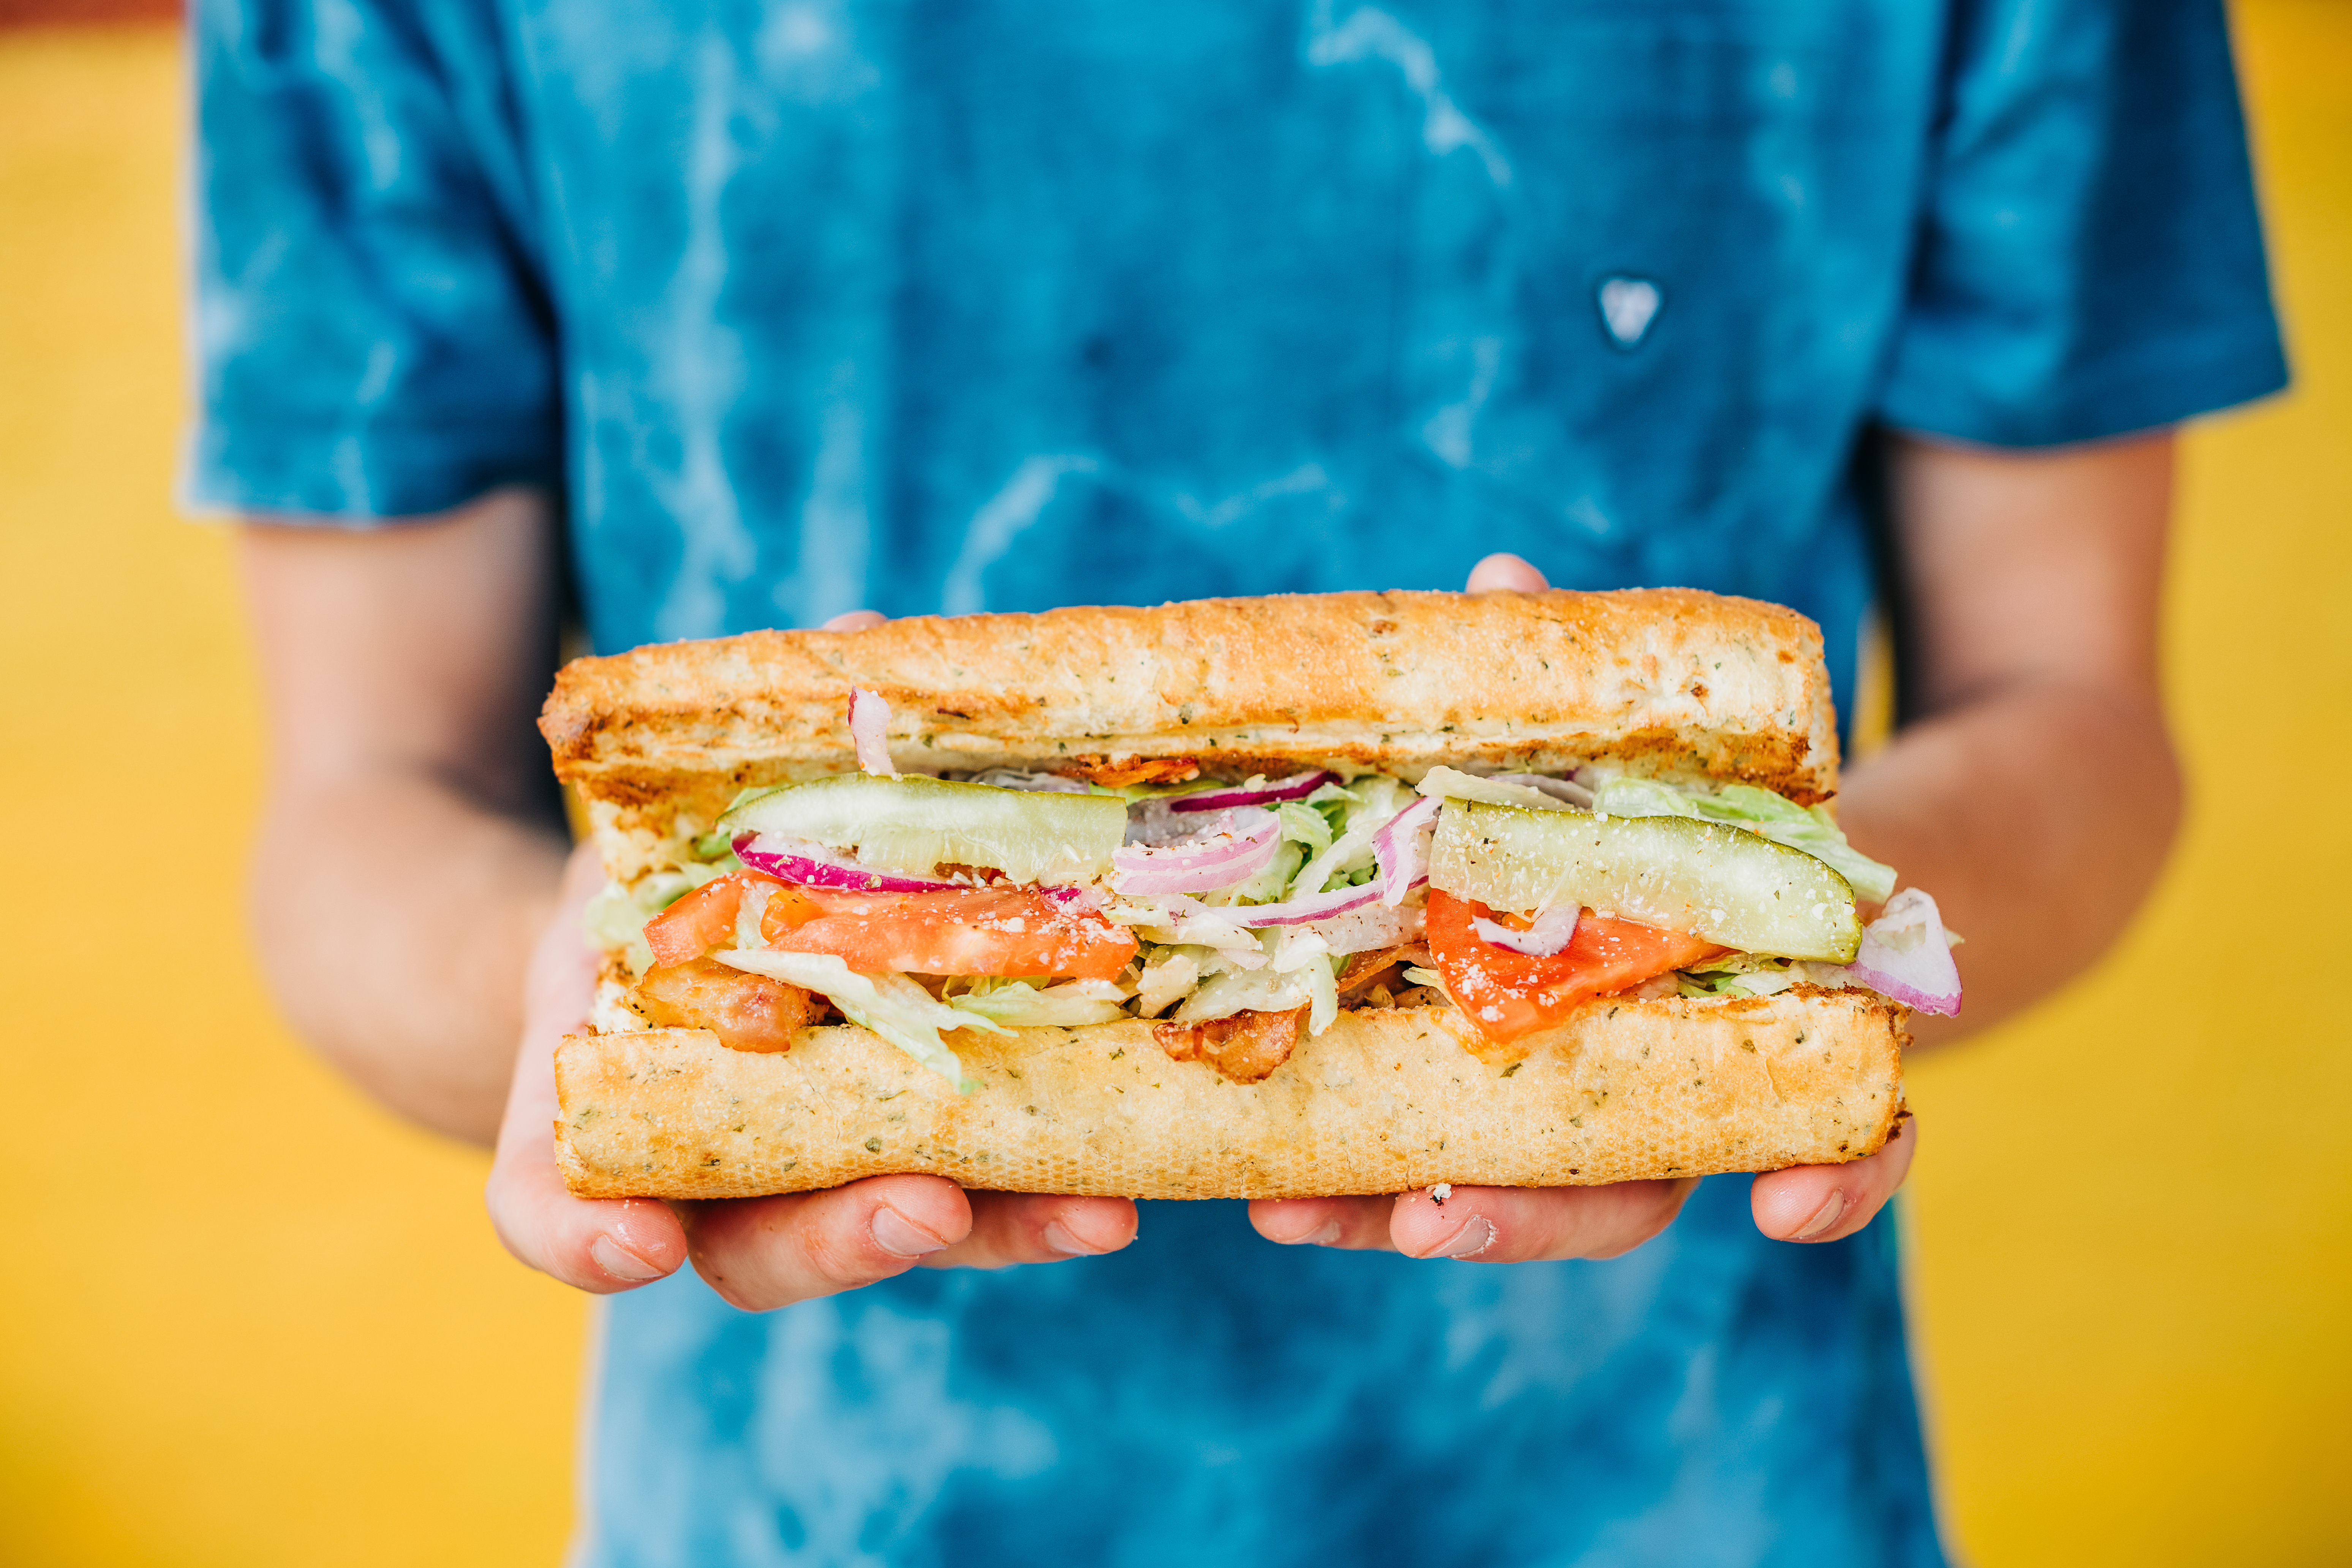 A person in a tie-dyed blue tee shirt standing in front of bright yellow wall holds a 12-inch sub sandwich stuffed with meats, pickles, tomatoes, and lettuce